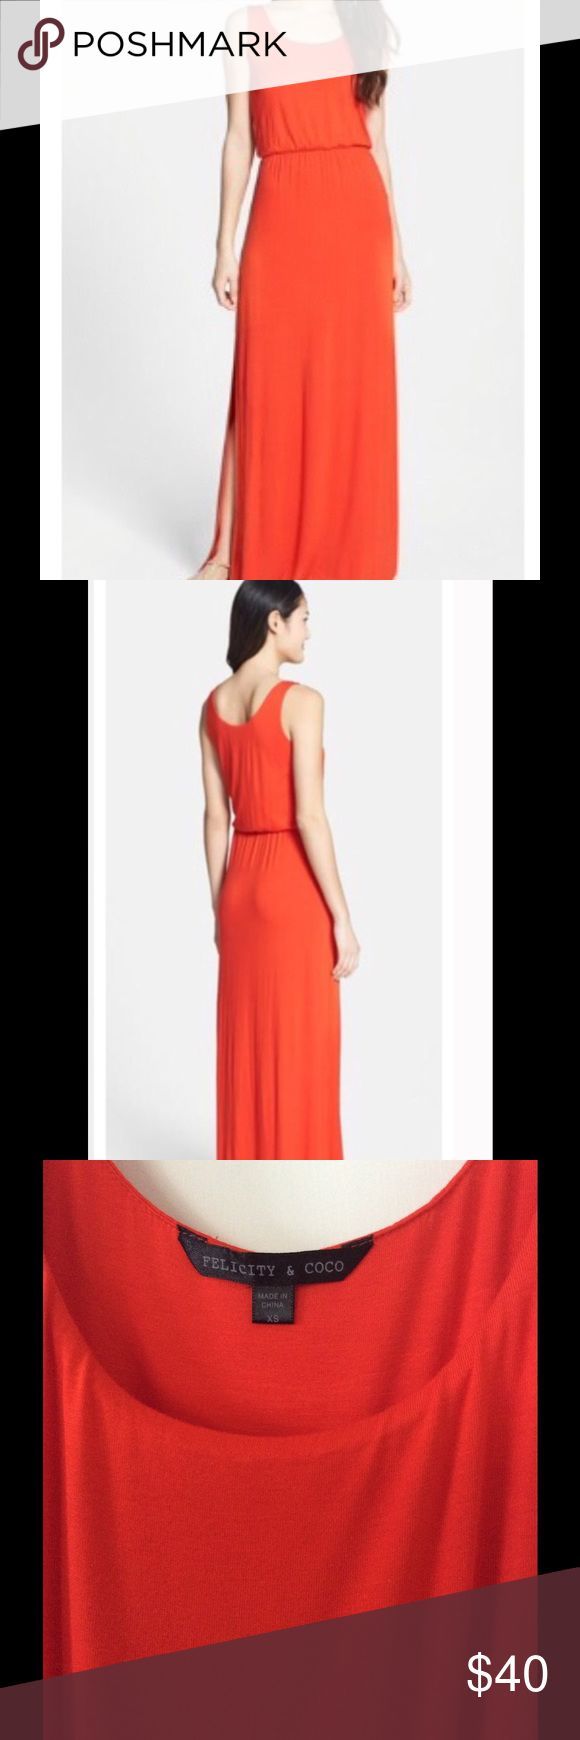 Felicity and Coco Red Jersey Maxi Dress Size XS Felicity and Coco Jersey Tank Maxi Dress in Red. Slits on both sides. Super cute and great for summer! Purchased from Nordstrom. In amazing condition- Only wore once. Felicity and Coco Dresses Maxi